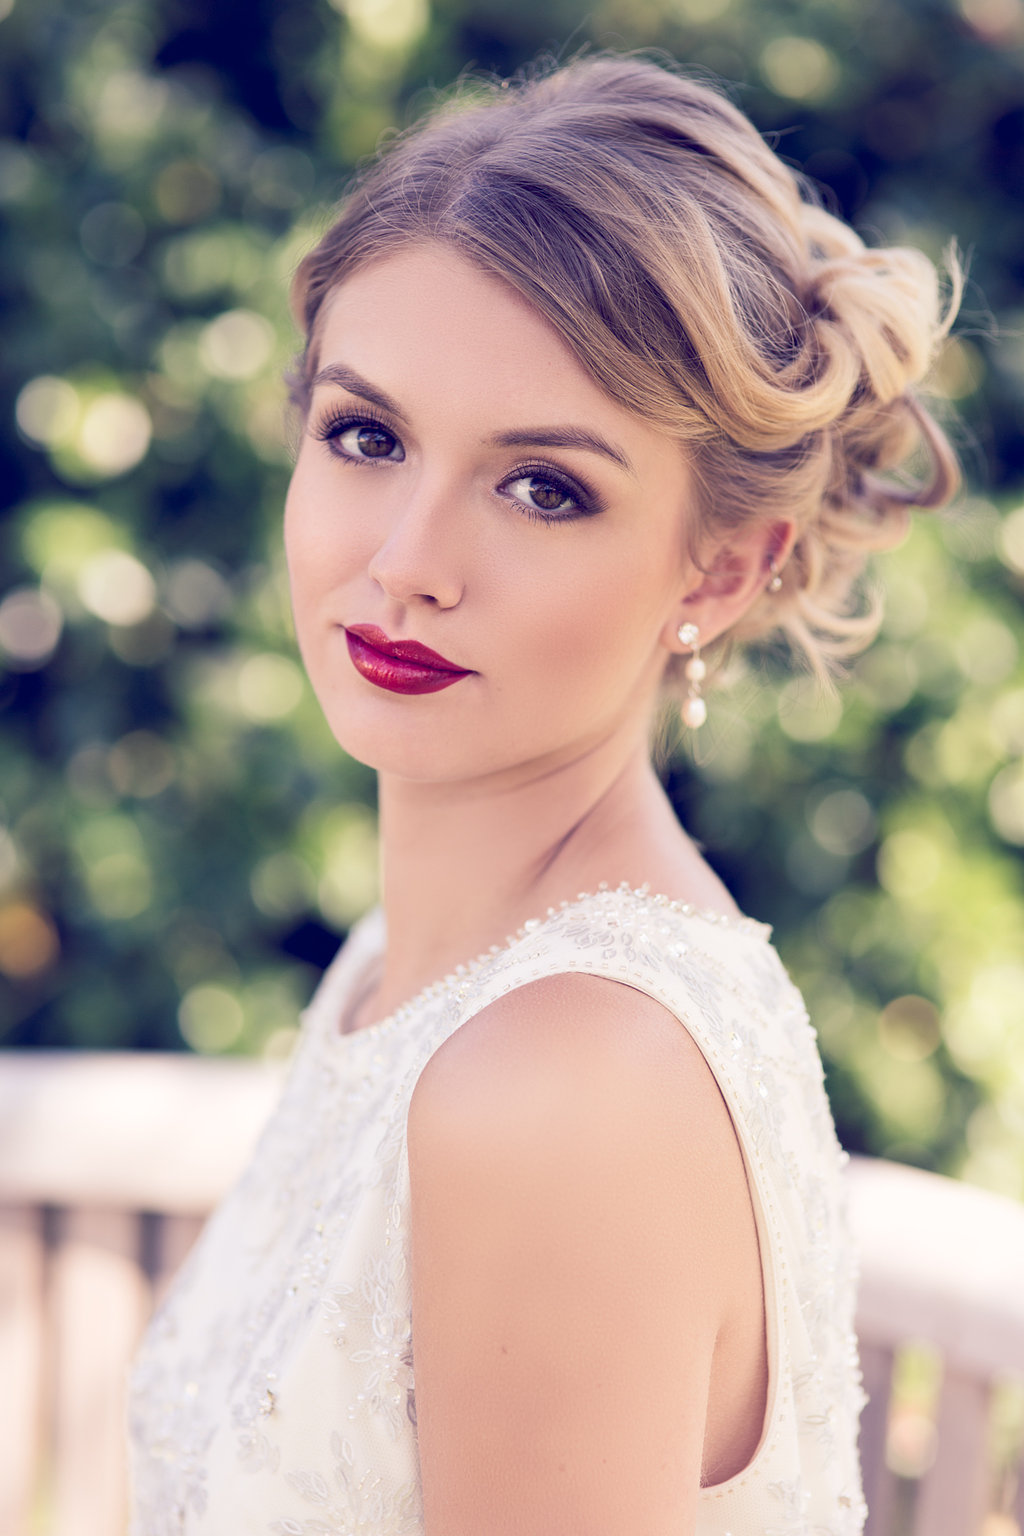 Day Makeup For Wedding Guest : Capturing the Bridal Look - 4 different ways to style your ...